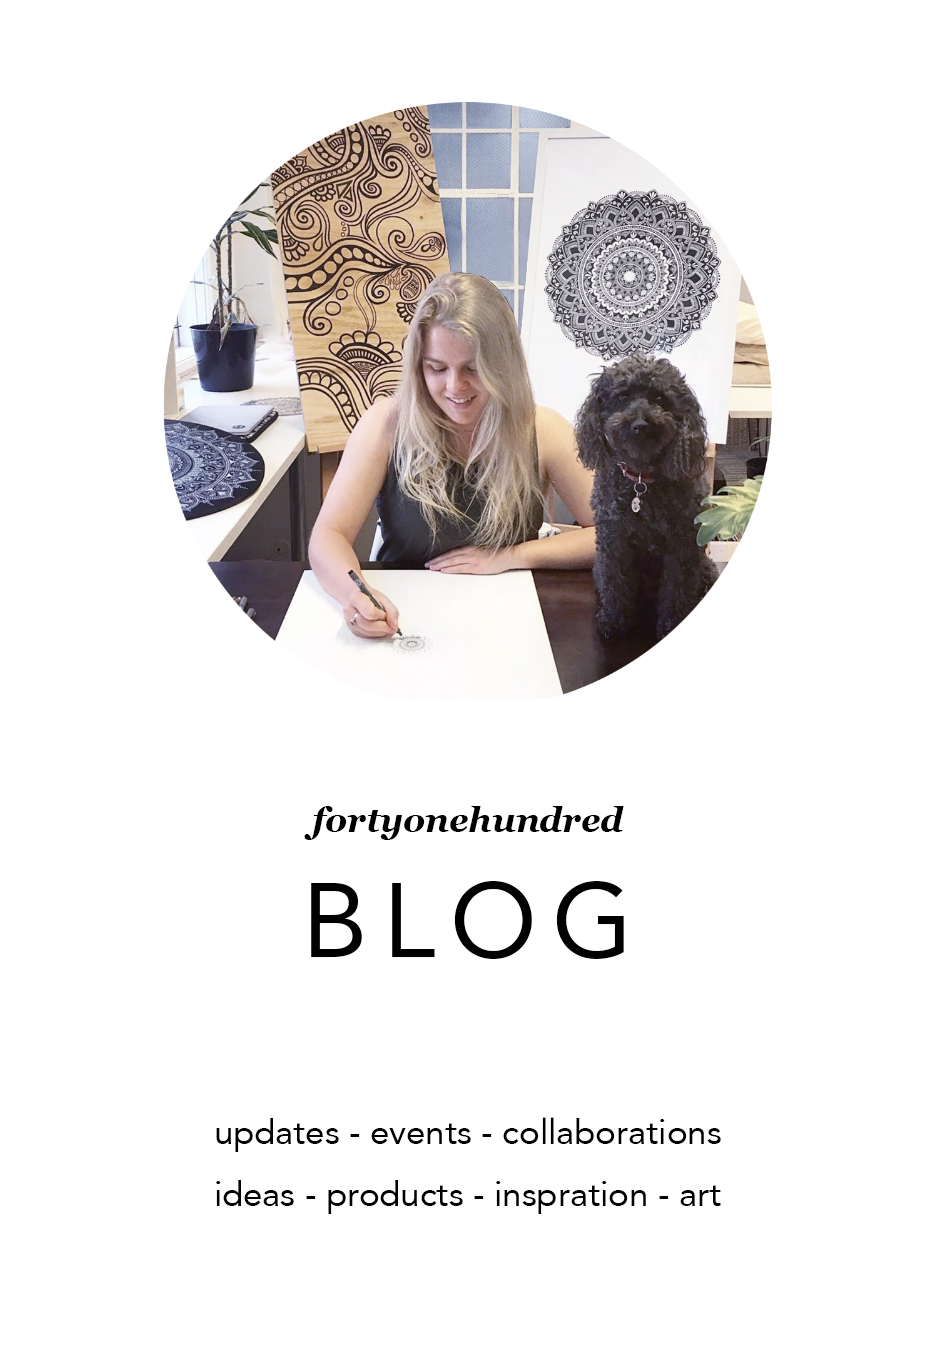 Blog Posts      - Studio Vlog    - Mural Time Lapse   -  First Solo Exhibition   -   My Artist CV   -  February gifts   -  Sunrise Flow